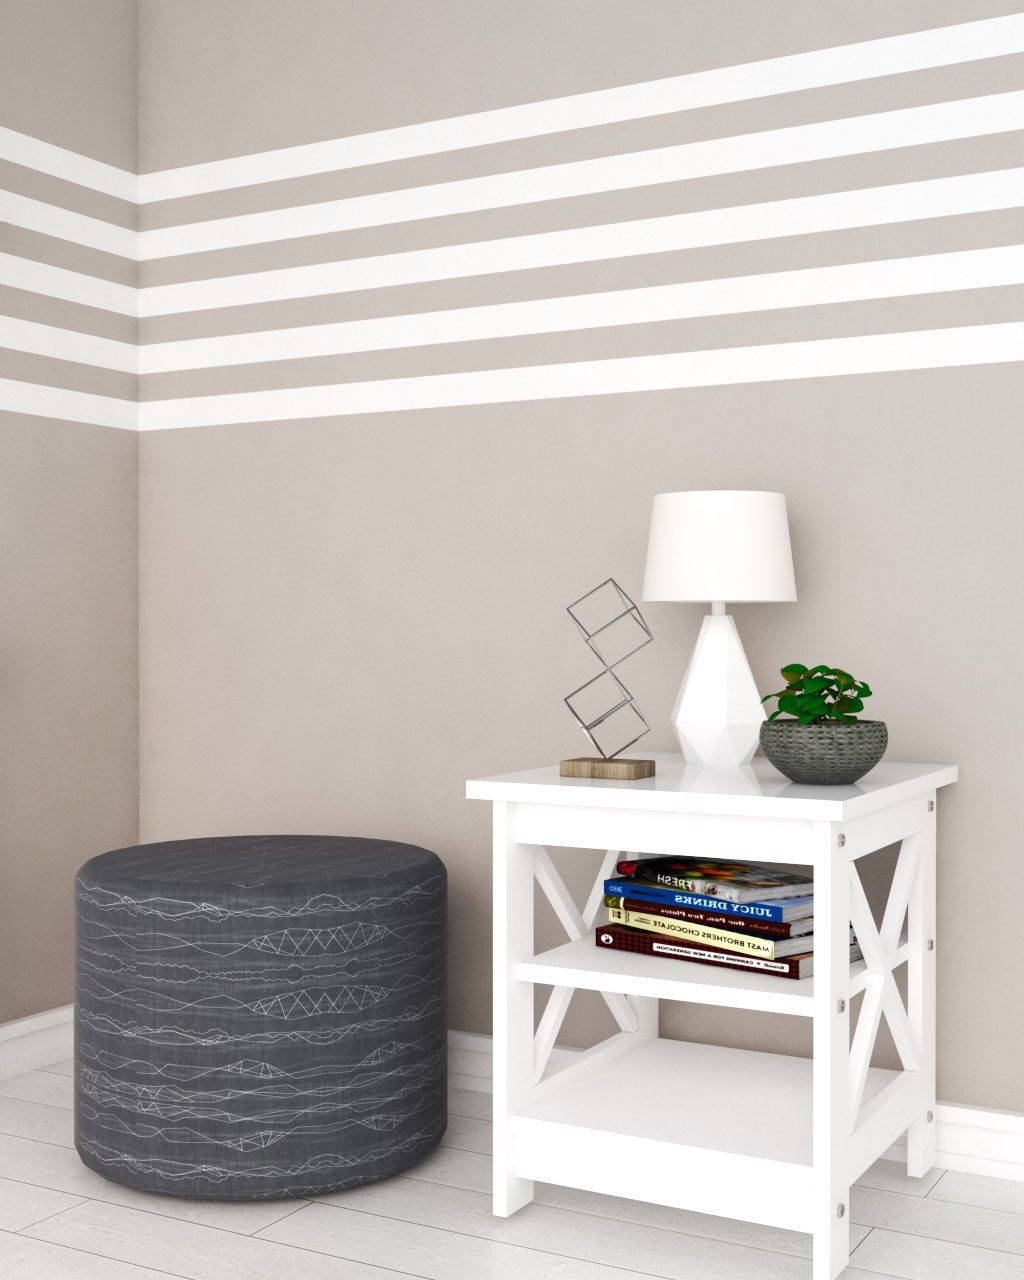 Brown And White Simple Line Wall Paint Ideas In 2020 Bedroom Wall Paint Striped Walls Horizontal Bedroom Wall Designs